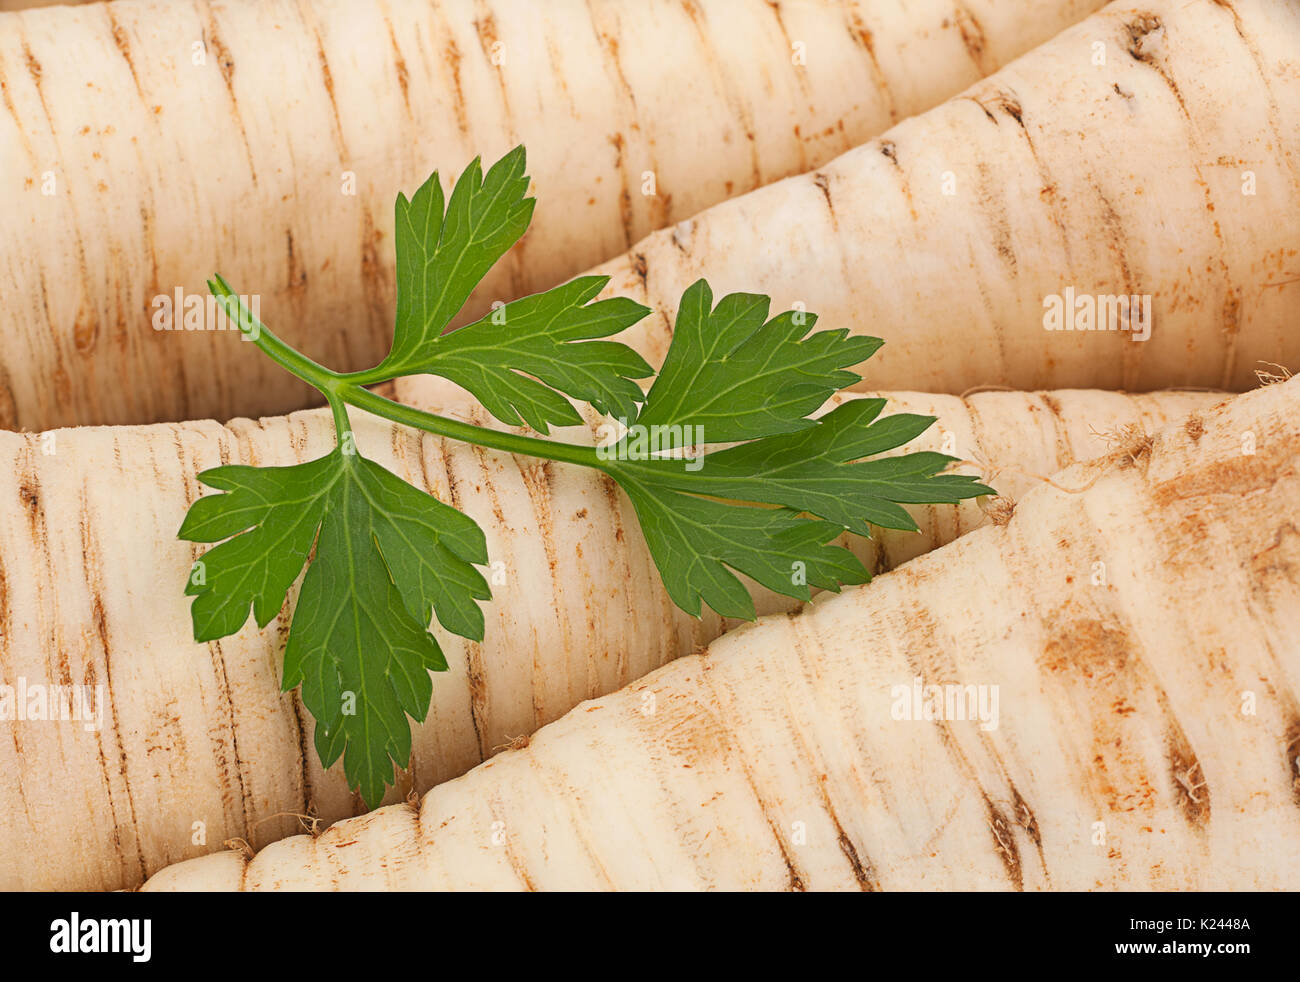 Ripe parsley vegetable root closeup background - Stock Image